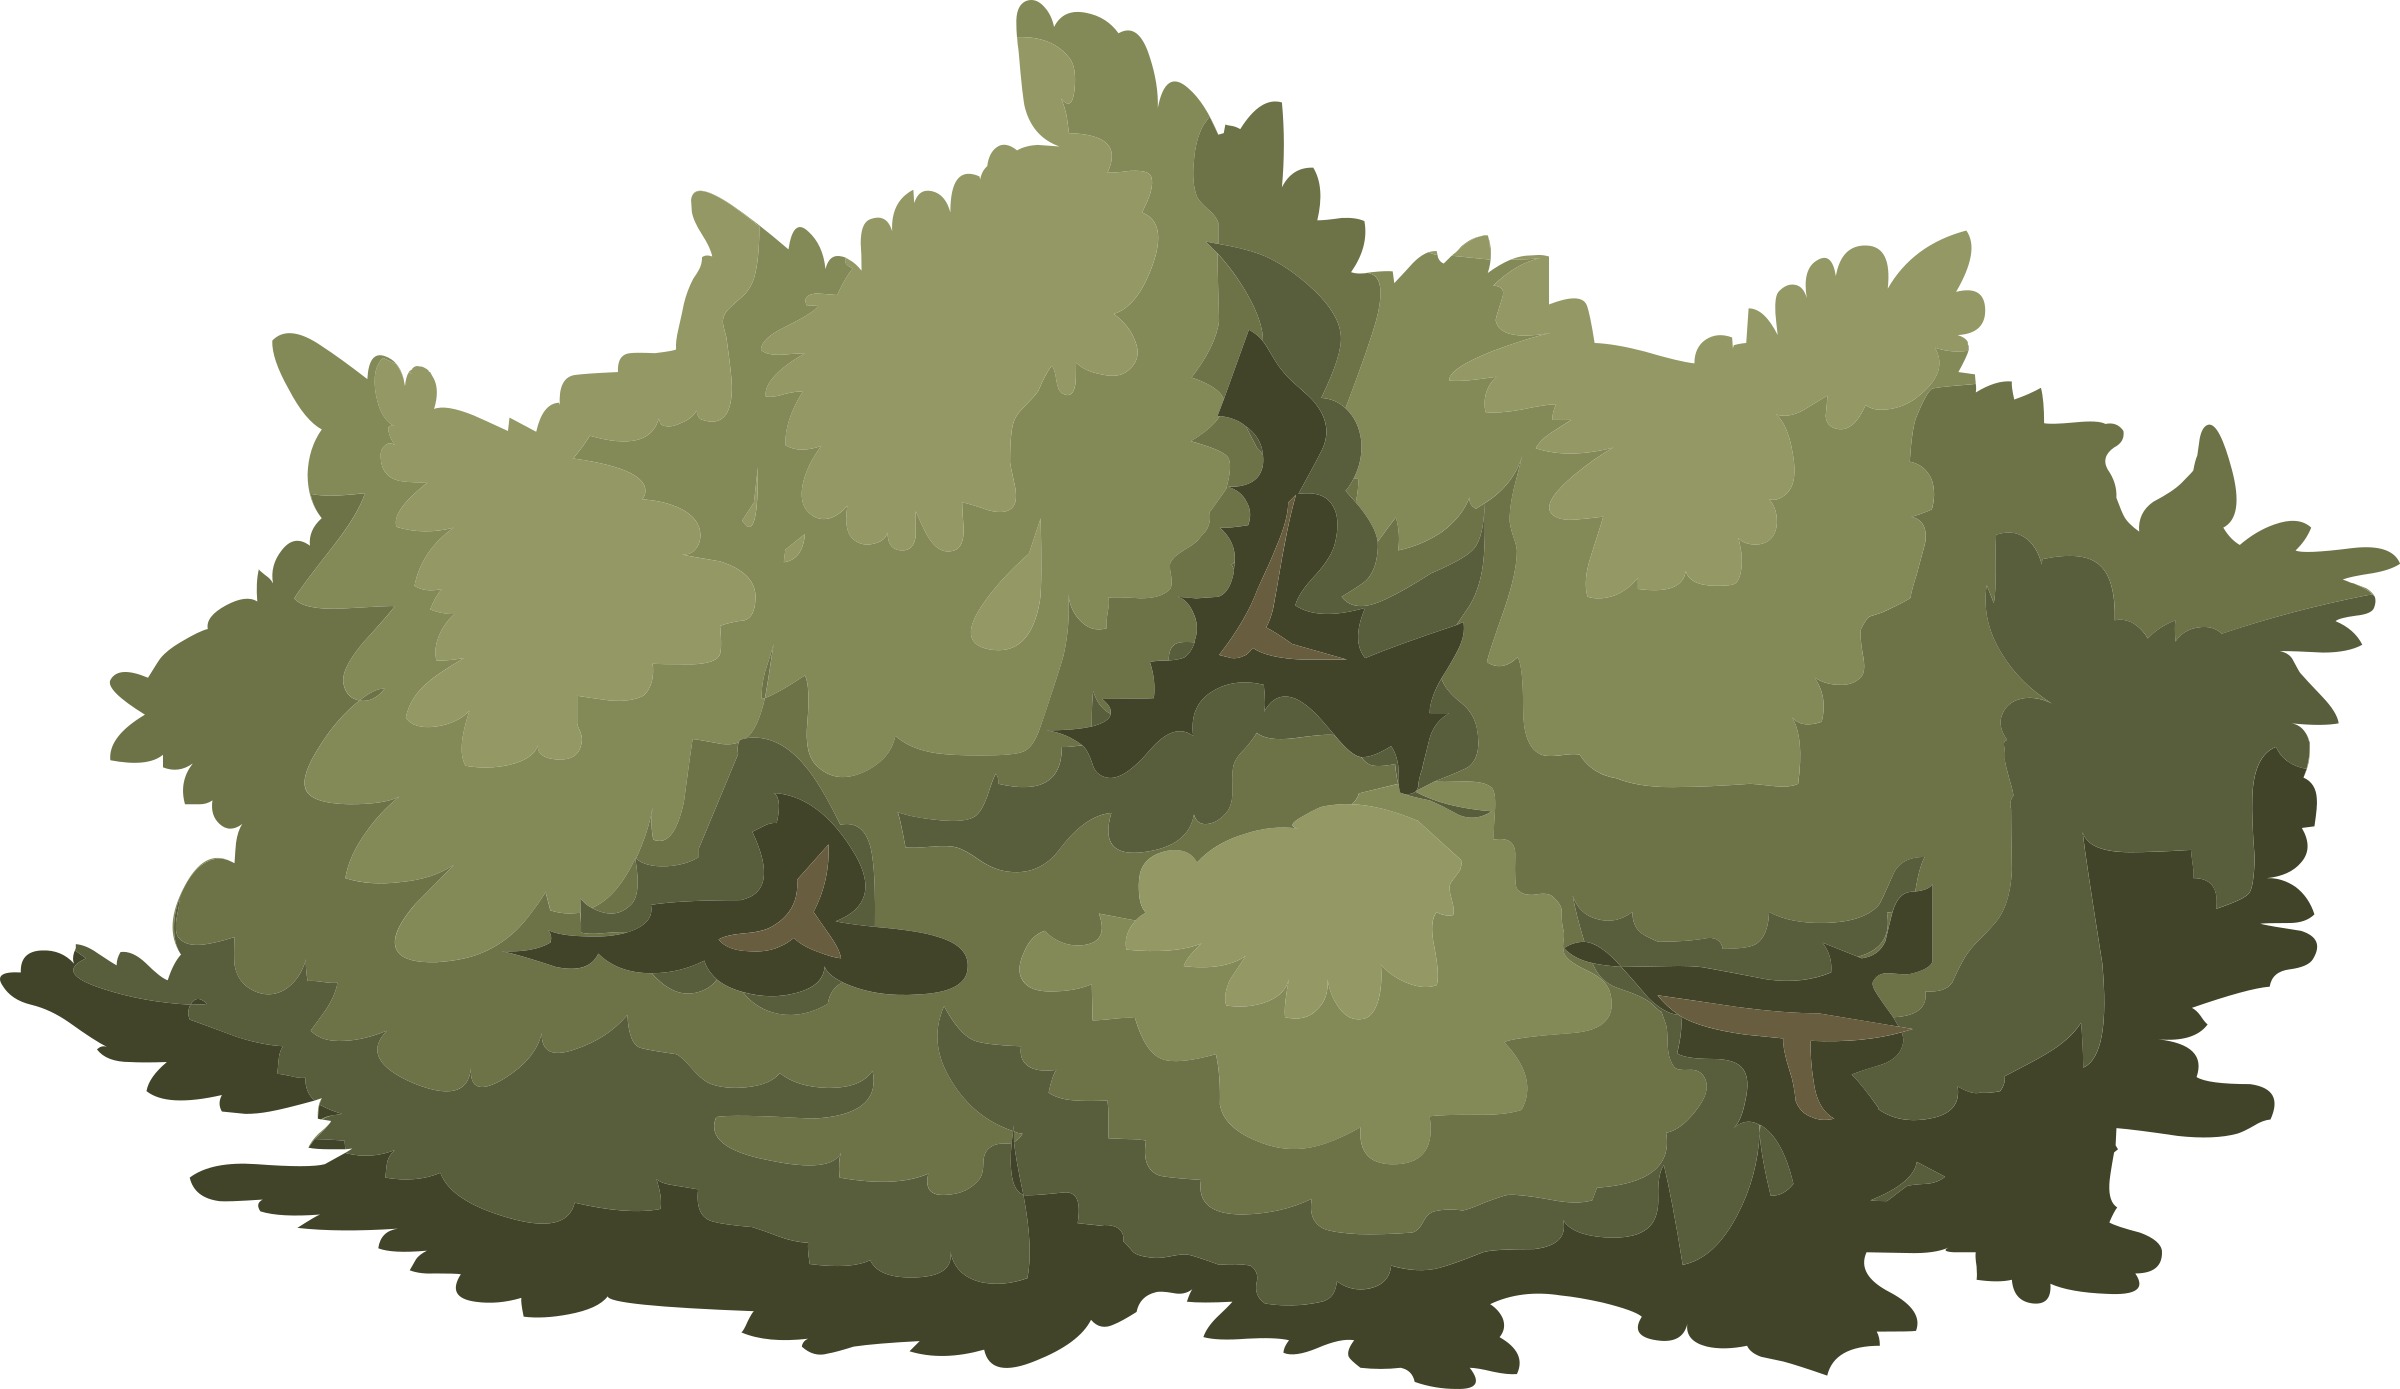 Bushes vector png. Alpine landscape mountain flora